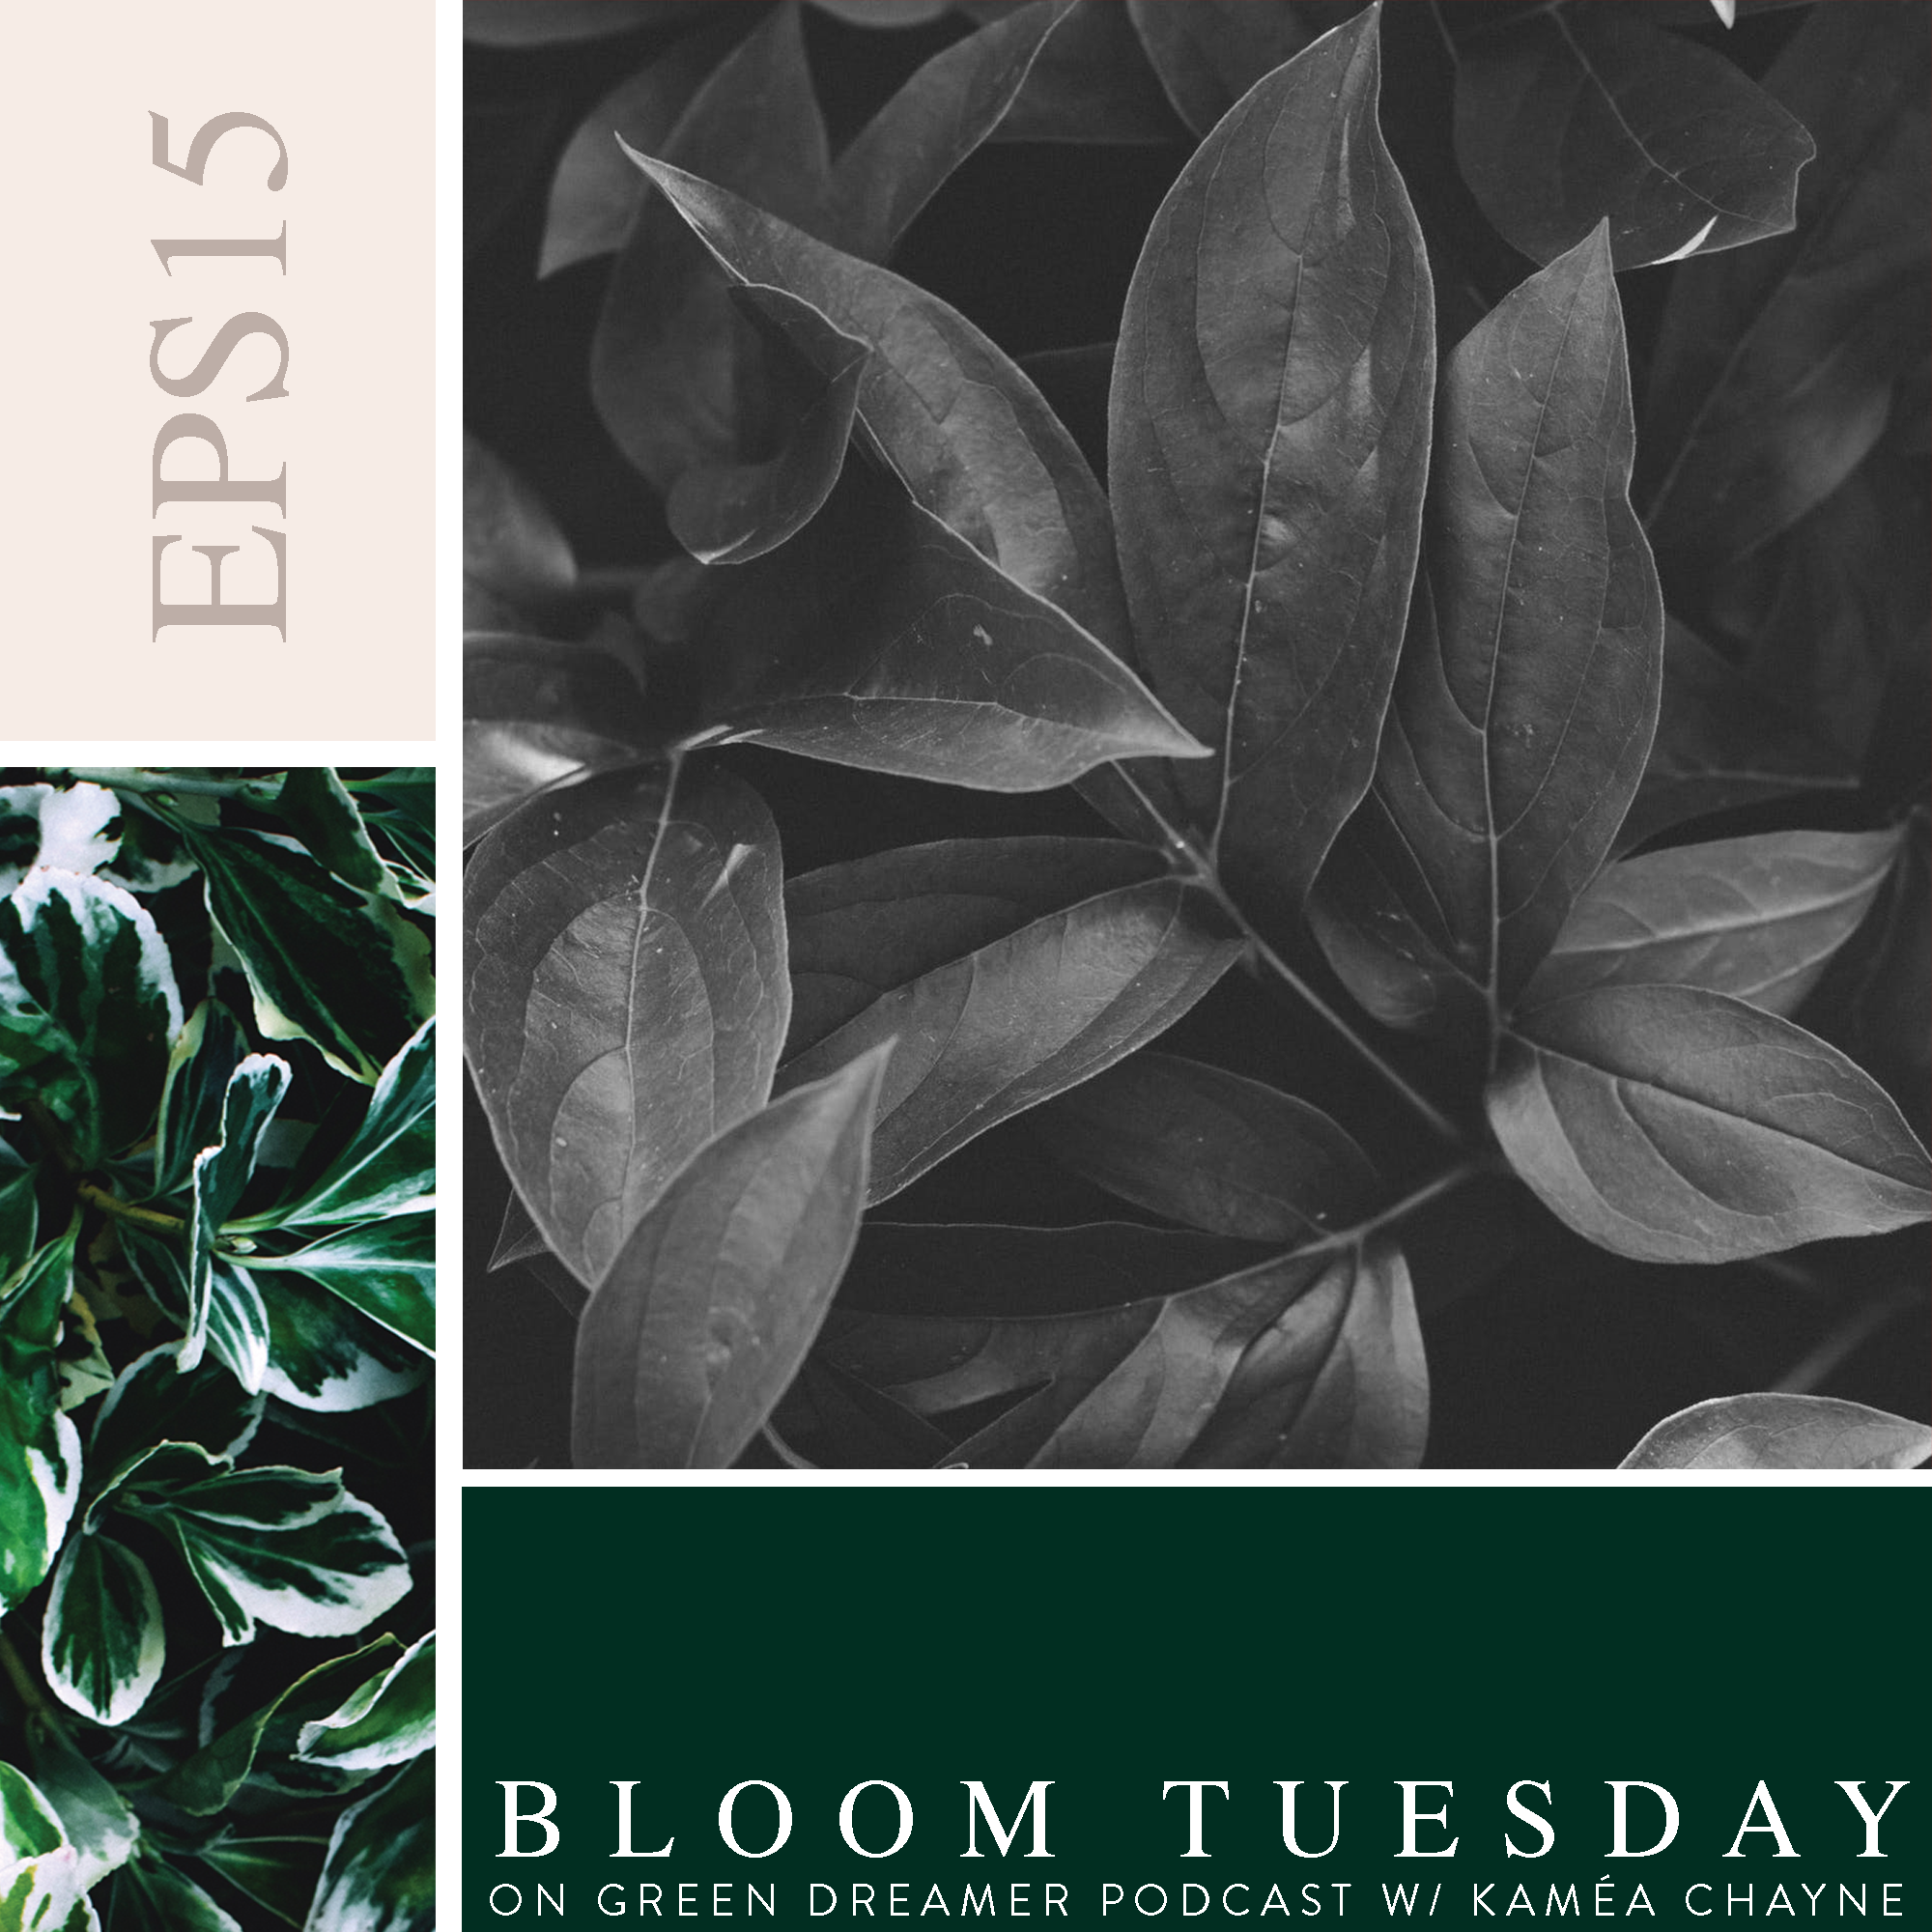 15) BLOOM TUESDAY